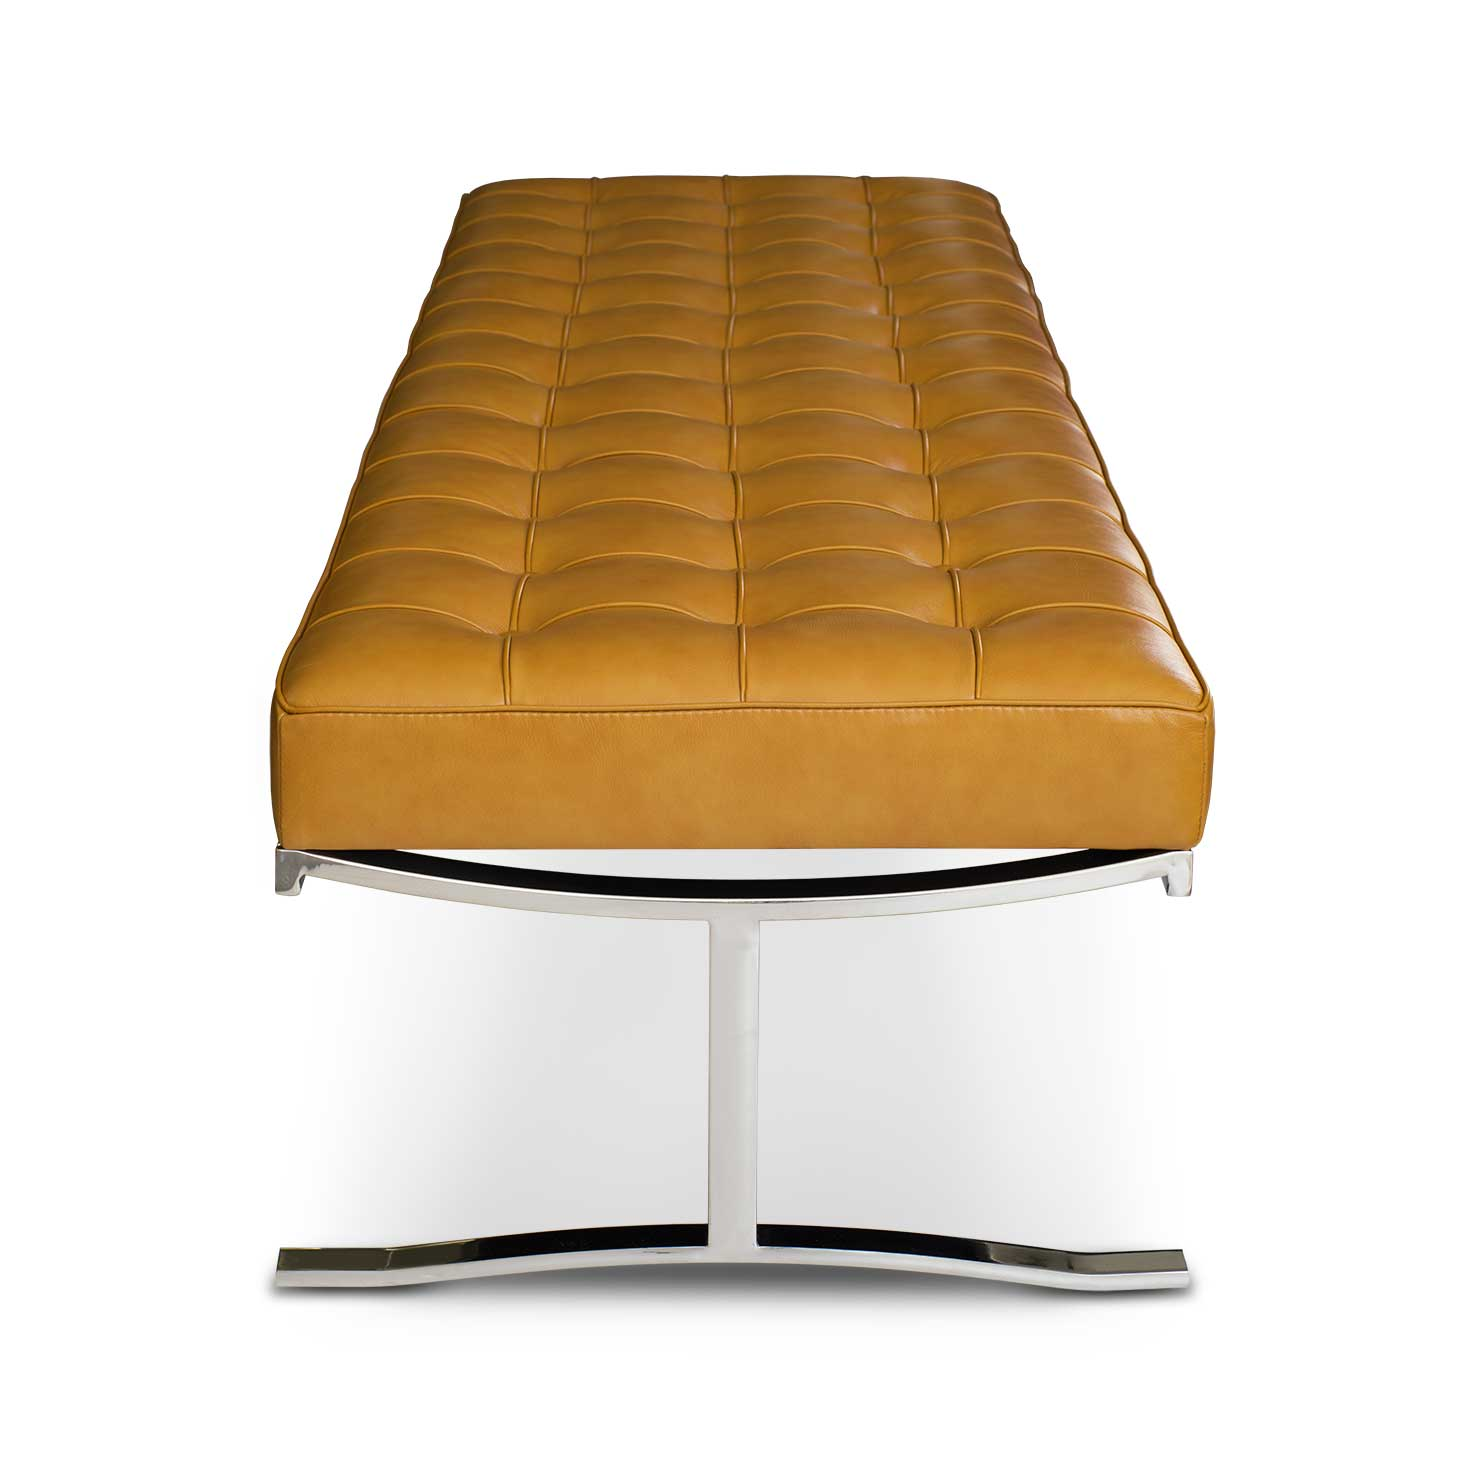 Leather Seating Bench Leather Tan Brown Neuerraum